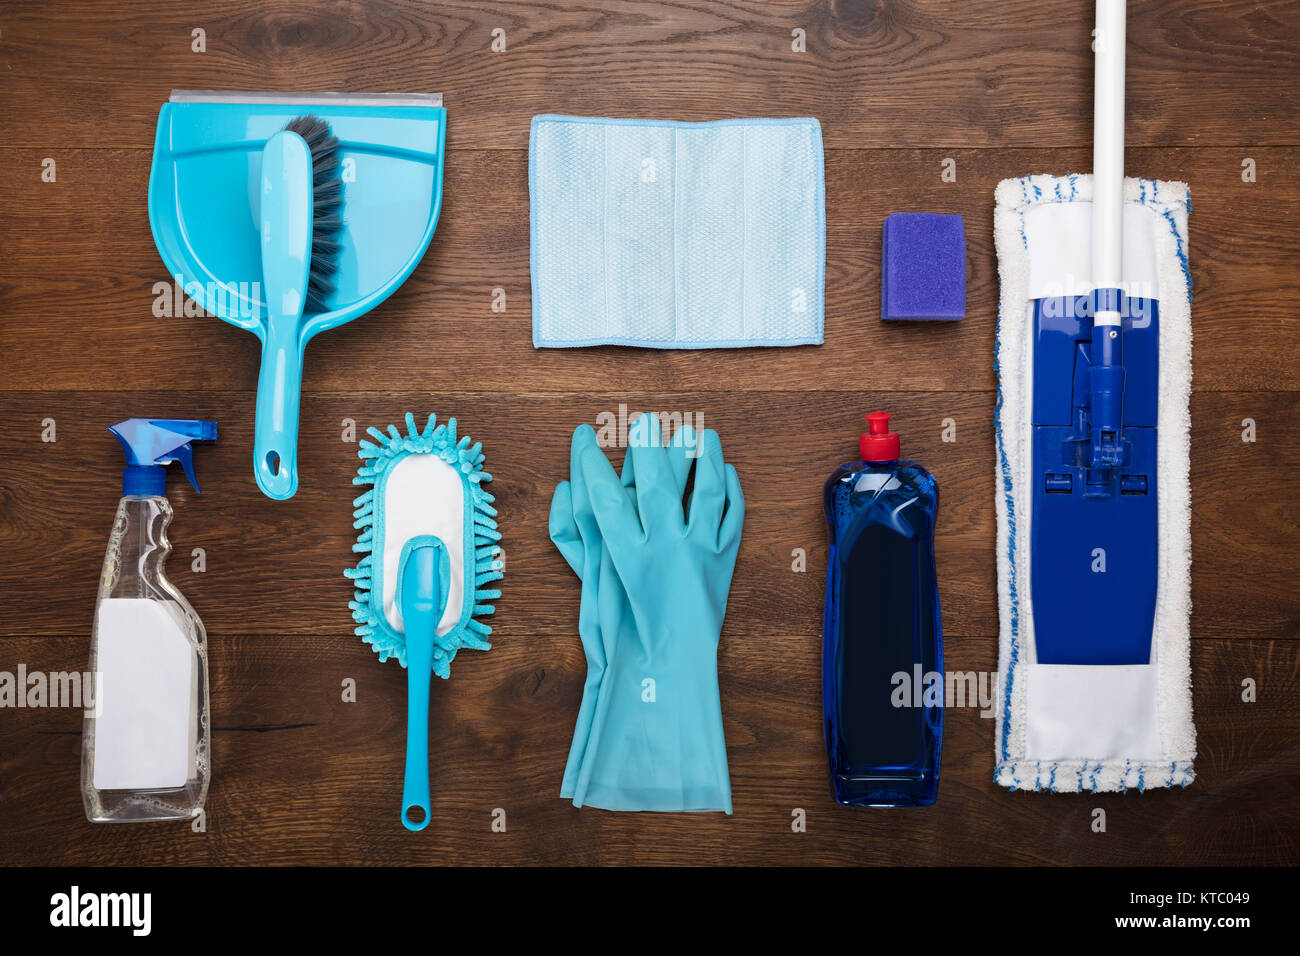 Cleaning Equipment On Wooden Desk - Stock Image